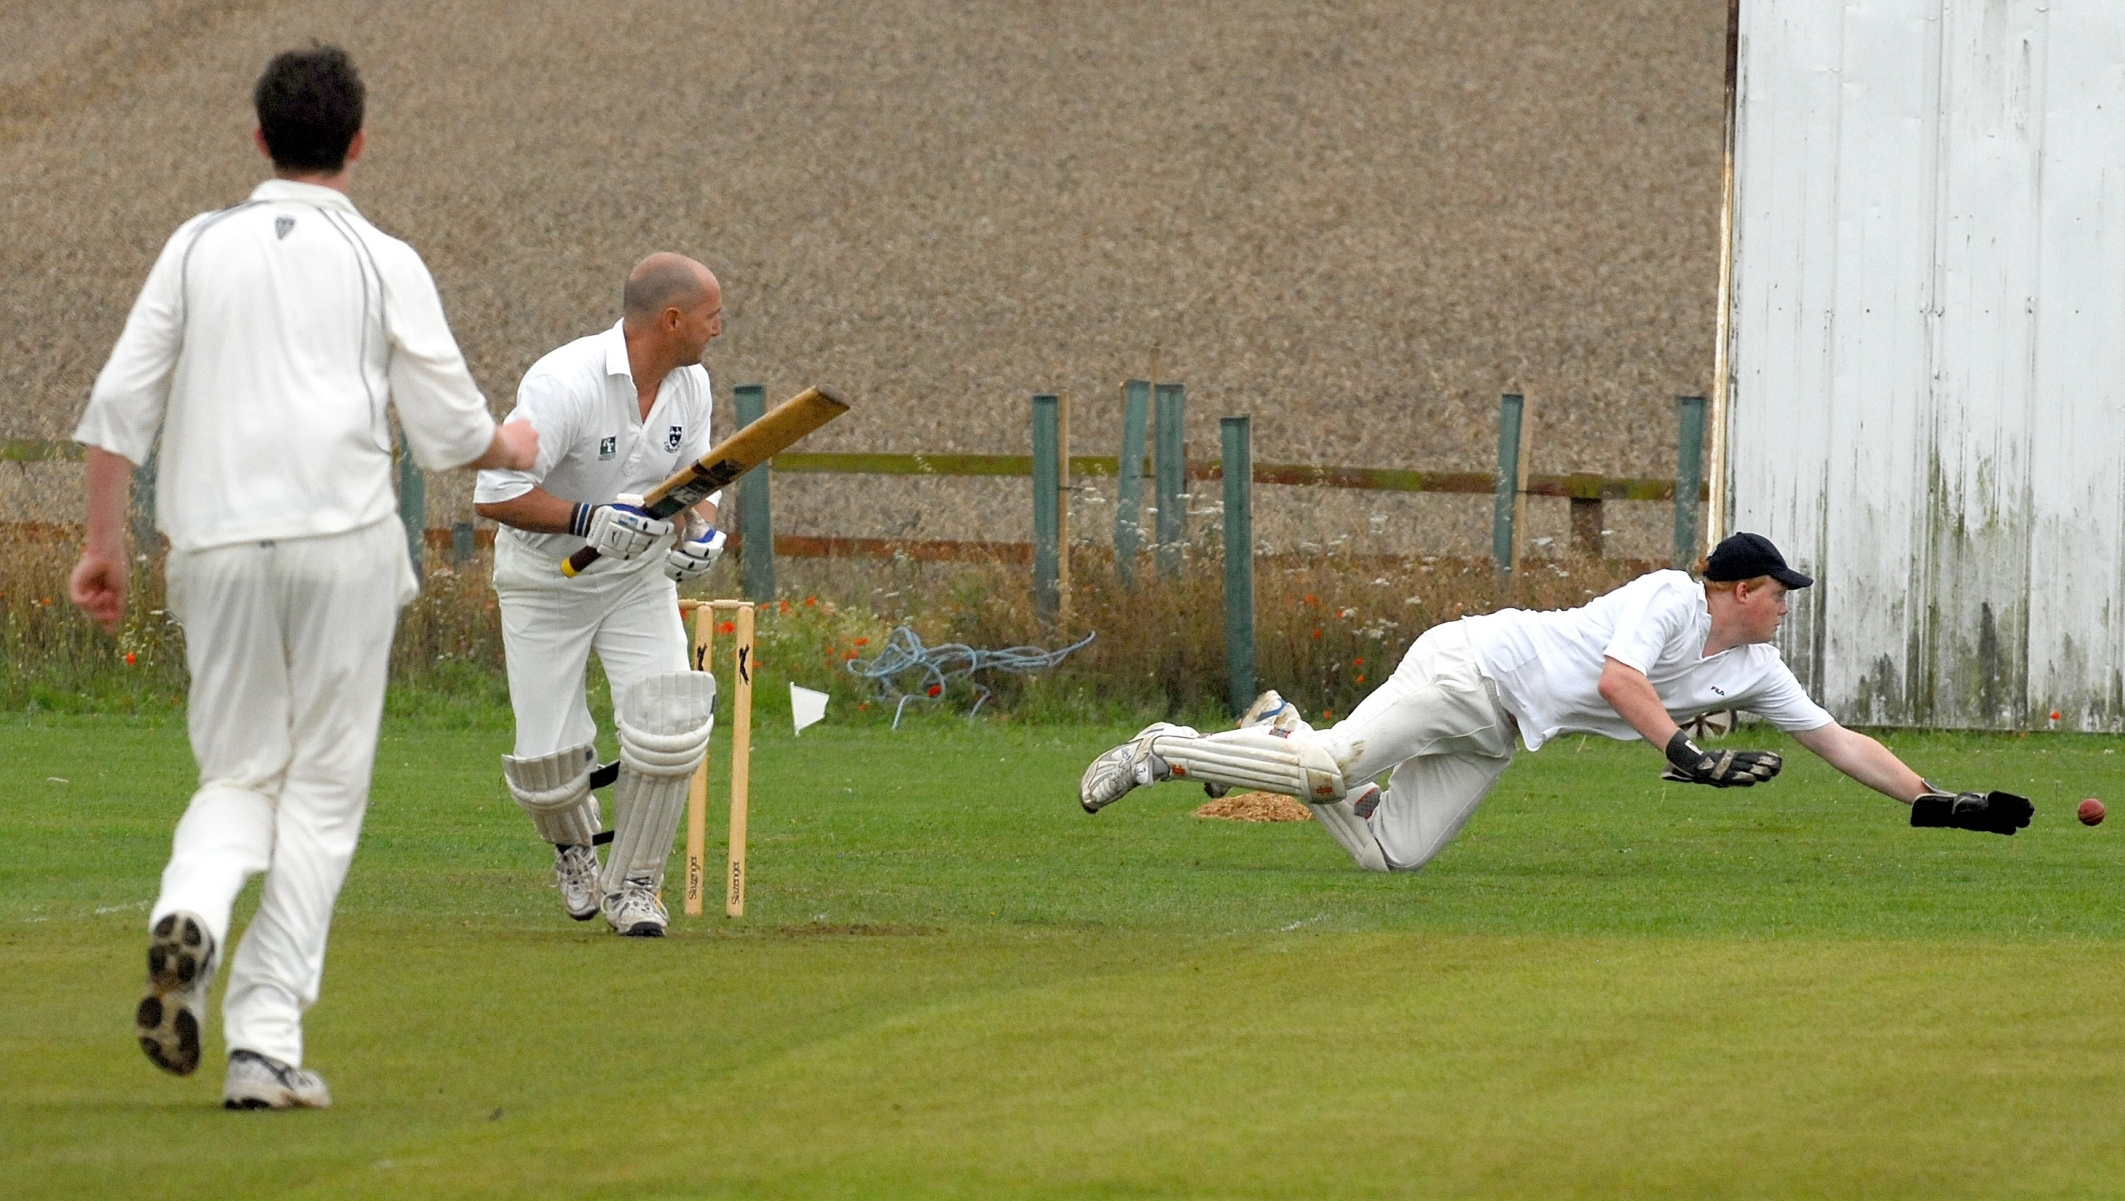 Ali Fothergill, seen here wicketkeeping for Westow, took his first 'five-for' at the weekend in the York Vale League game against Hirst Courtney